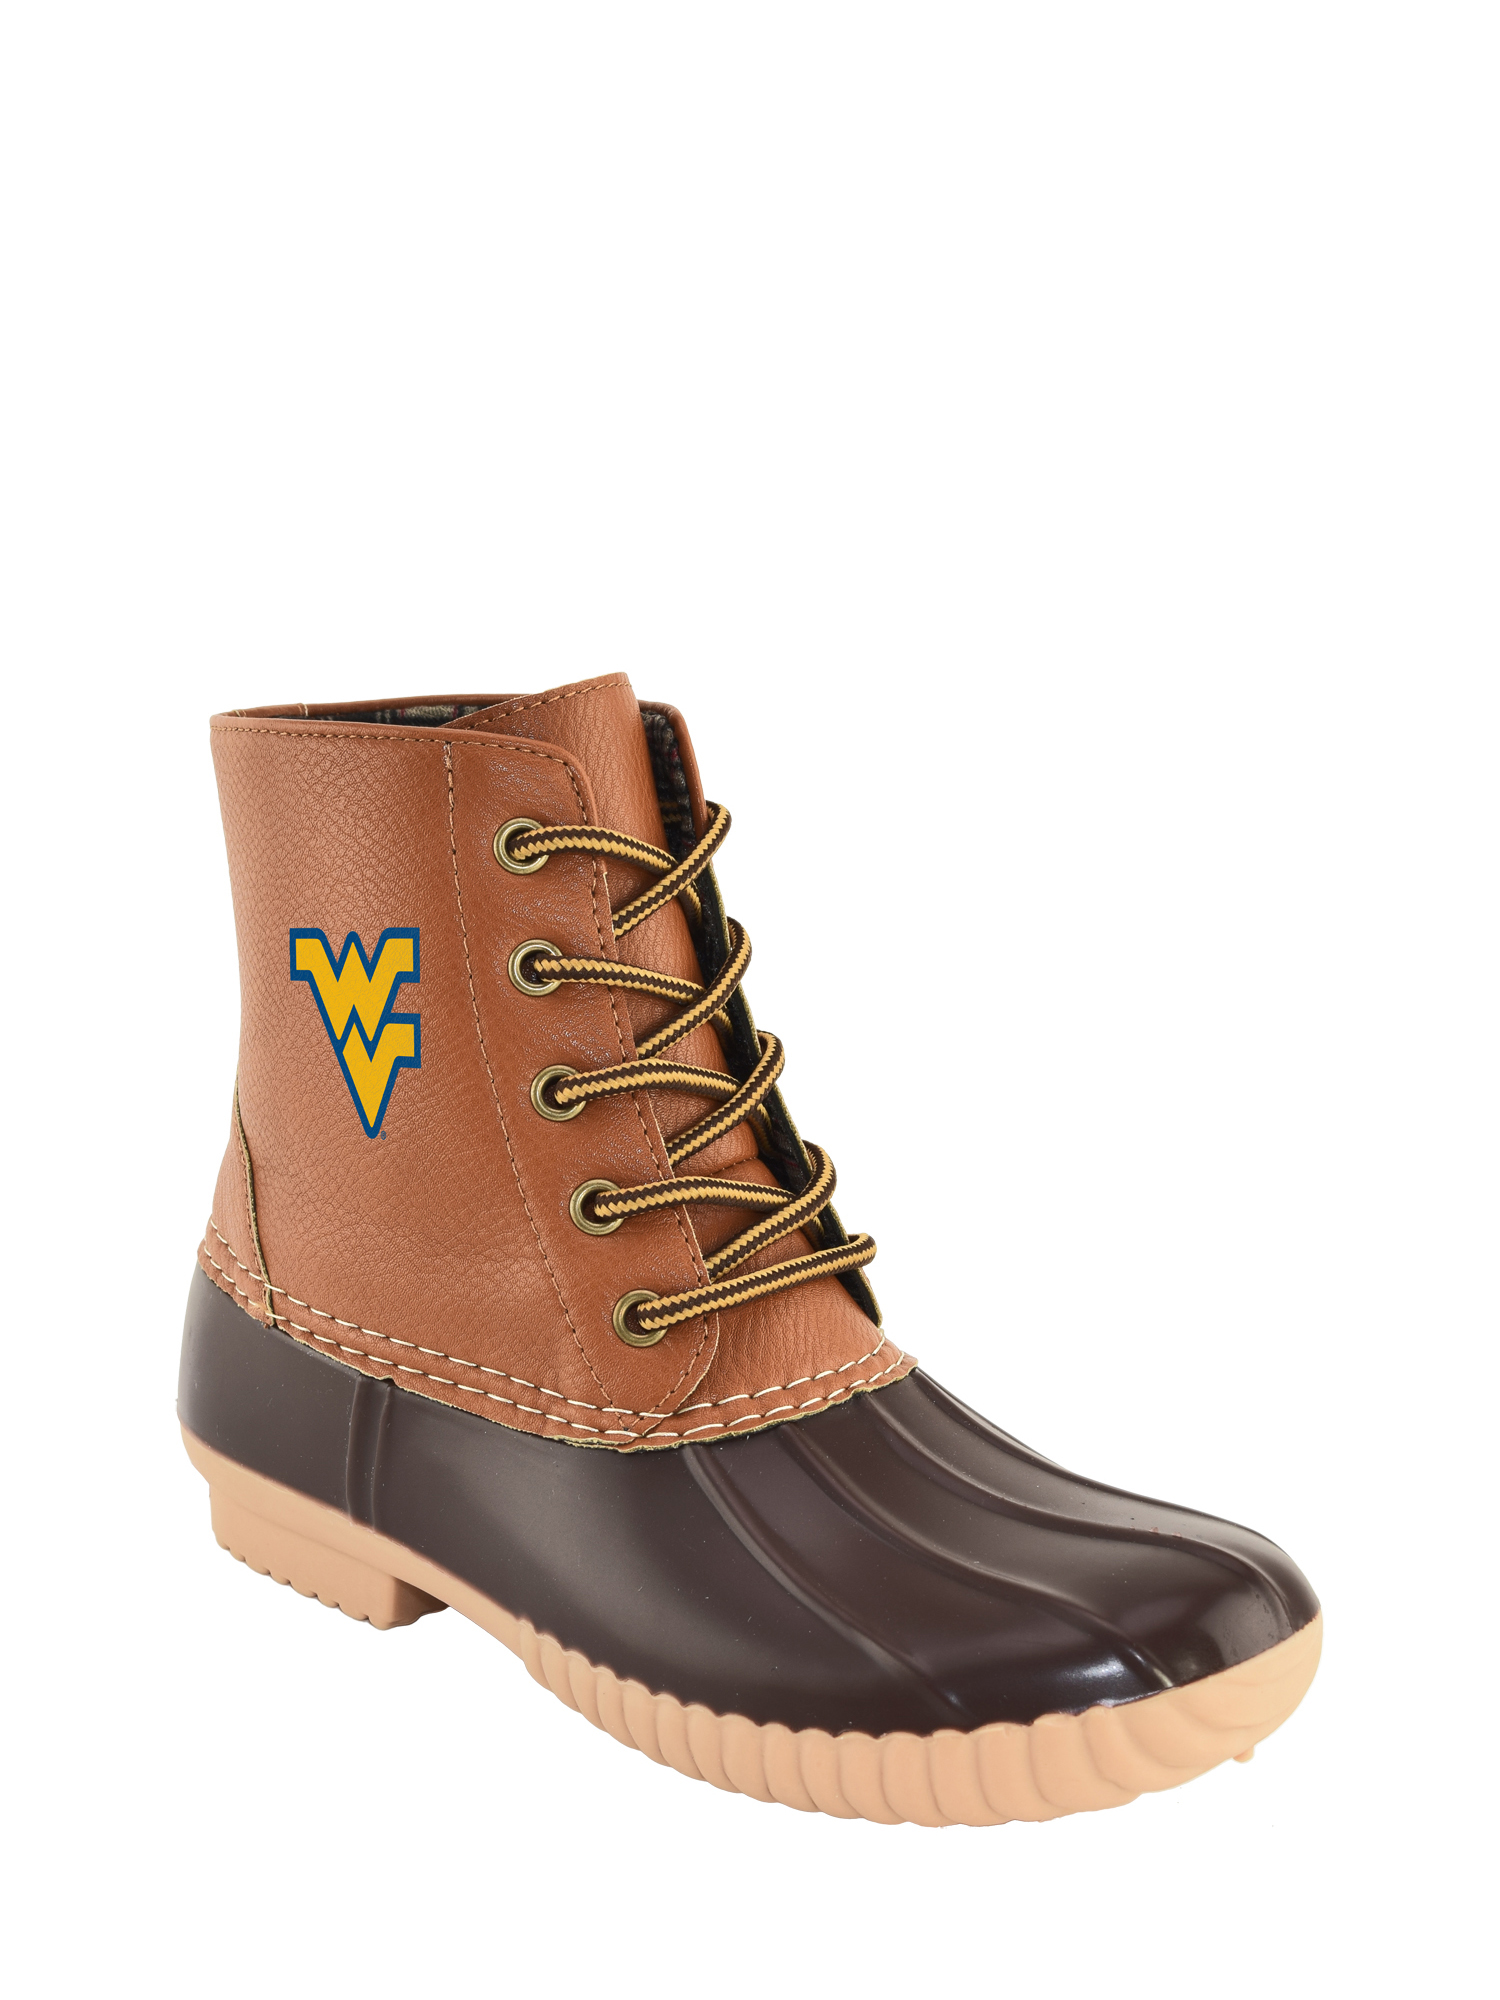 NCAA Women's West Virginia -High Duck Boot